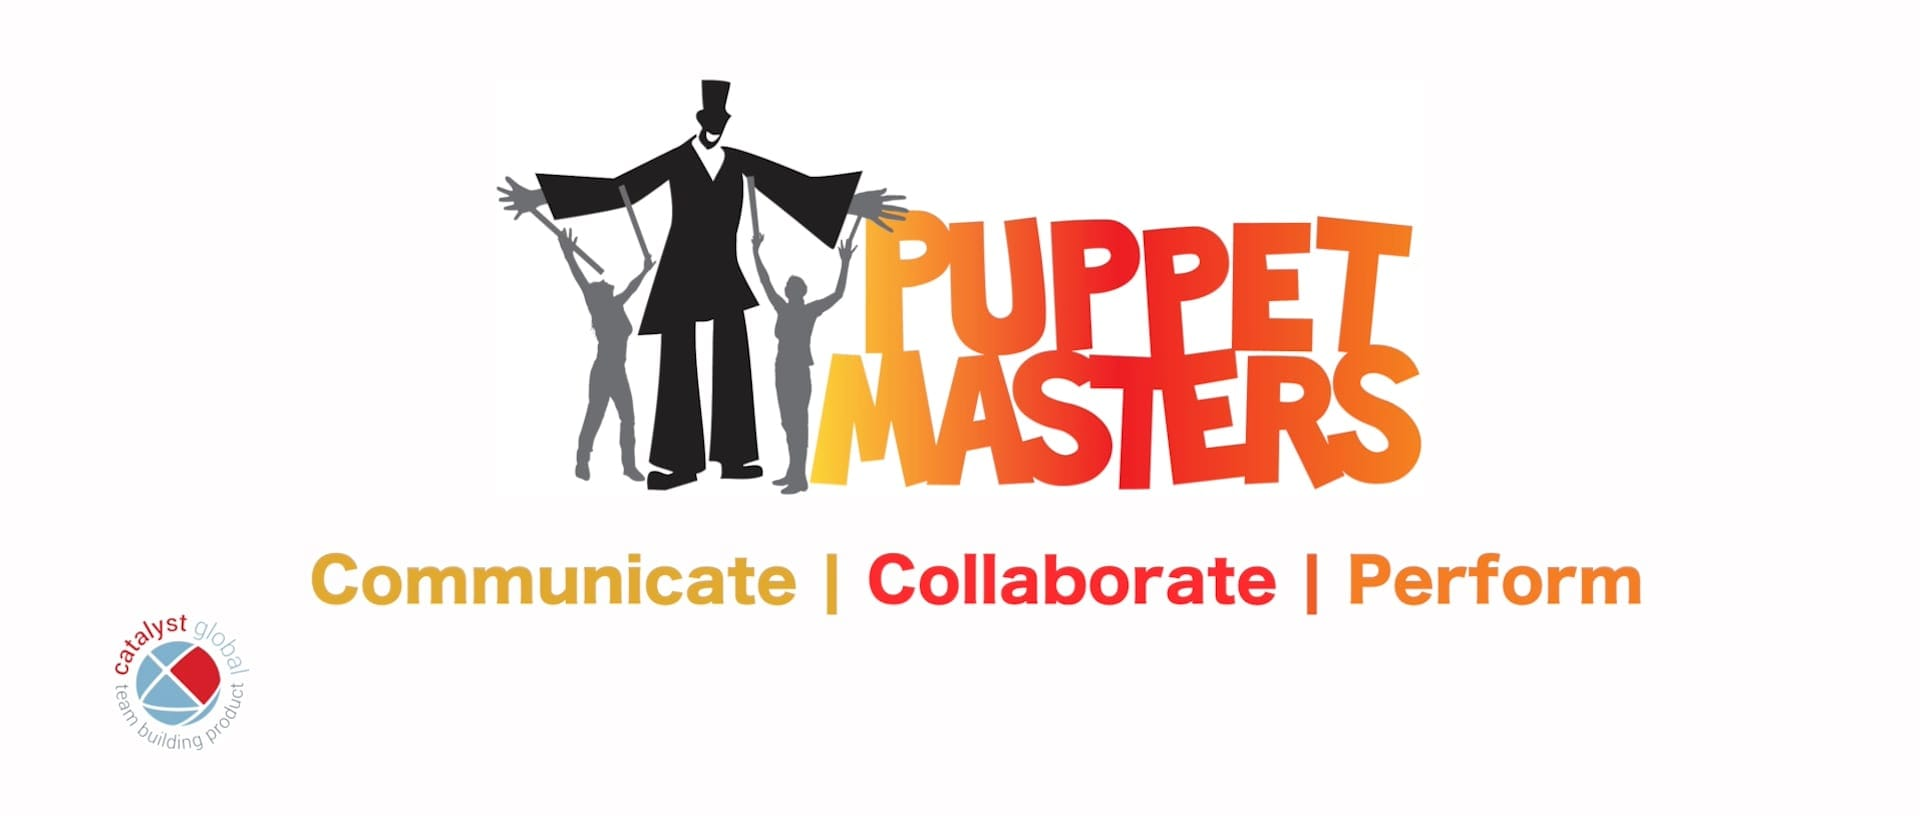 Puppet Masters teambuilding logo